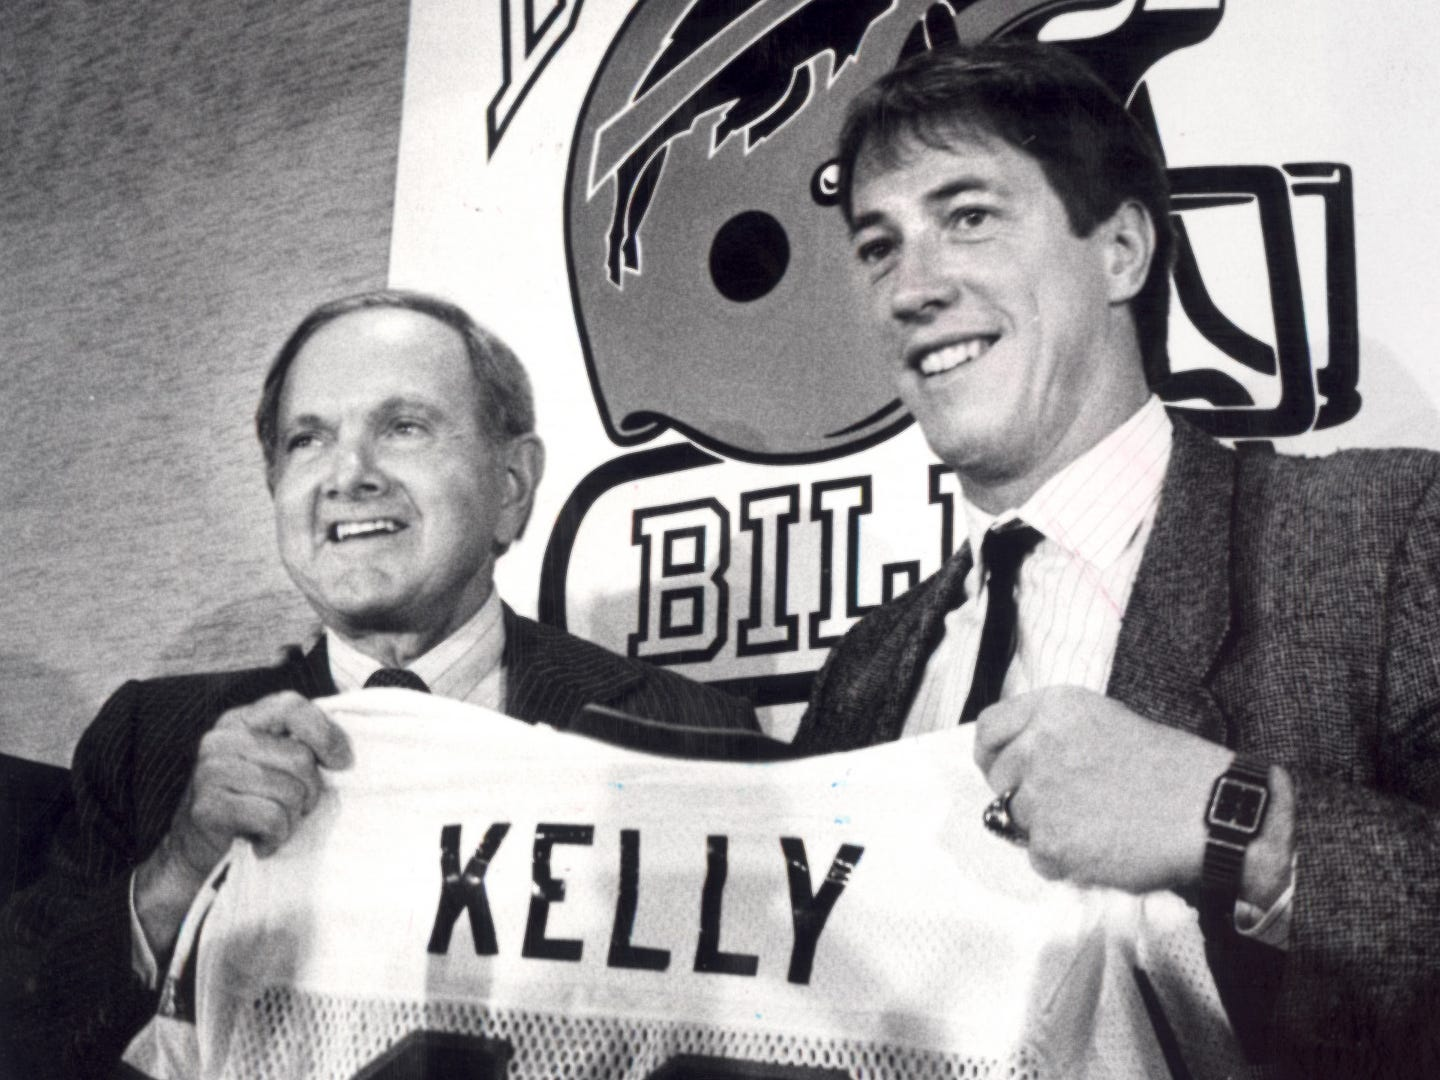 Bills owner Ralph Wilson, left, welcomes his new quarterback, Jim Kelly, to Buffalo in this 1986 photo. Wilson would have turned 100 today (Oct. 17, 2018).